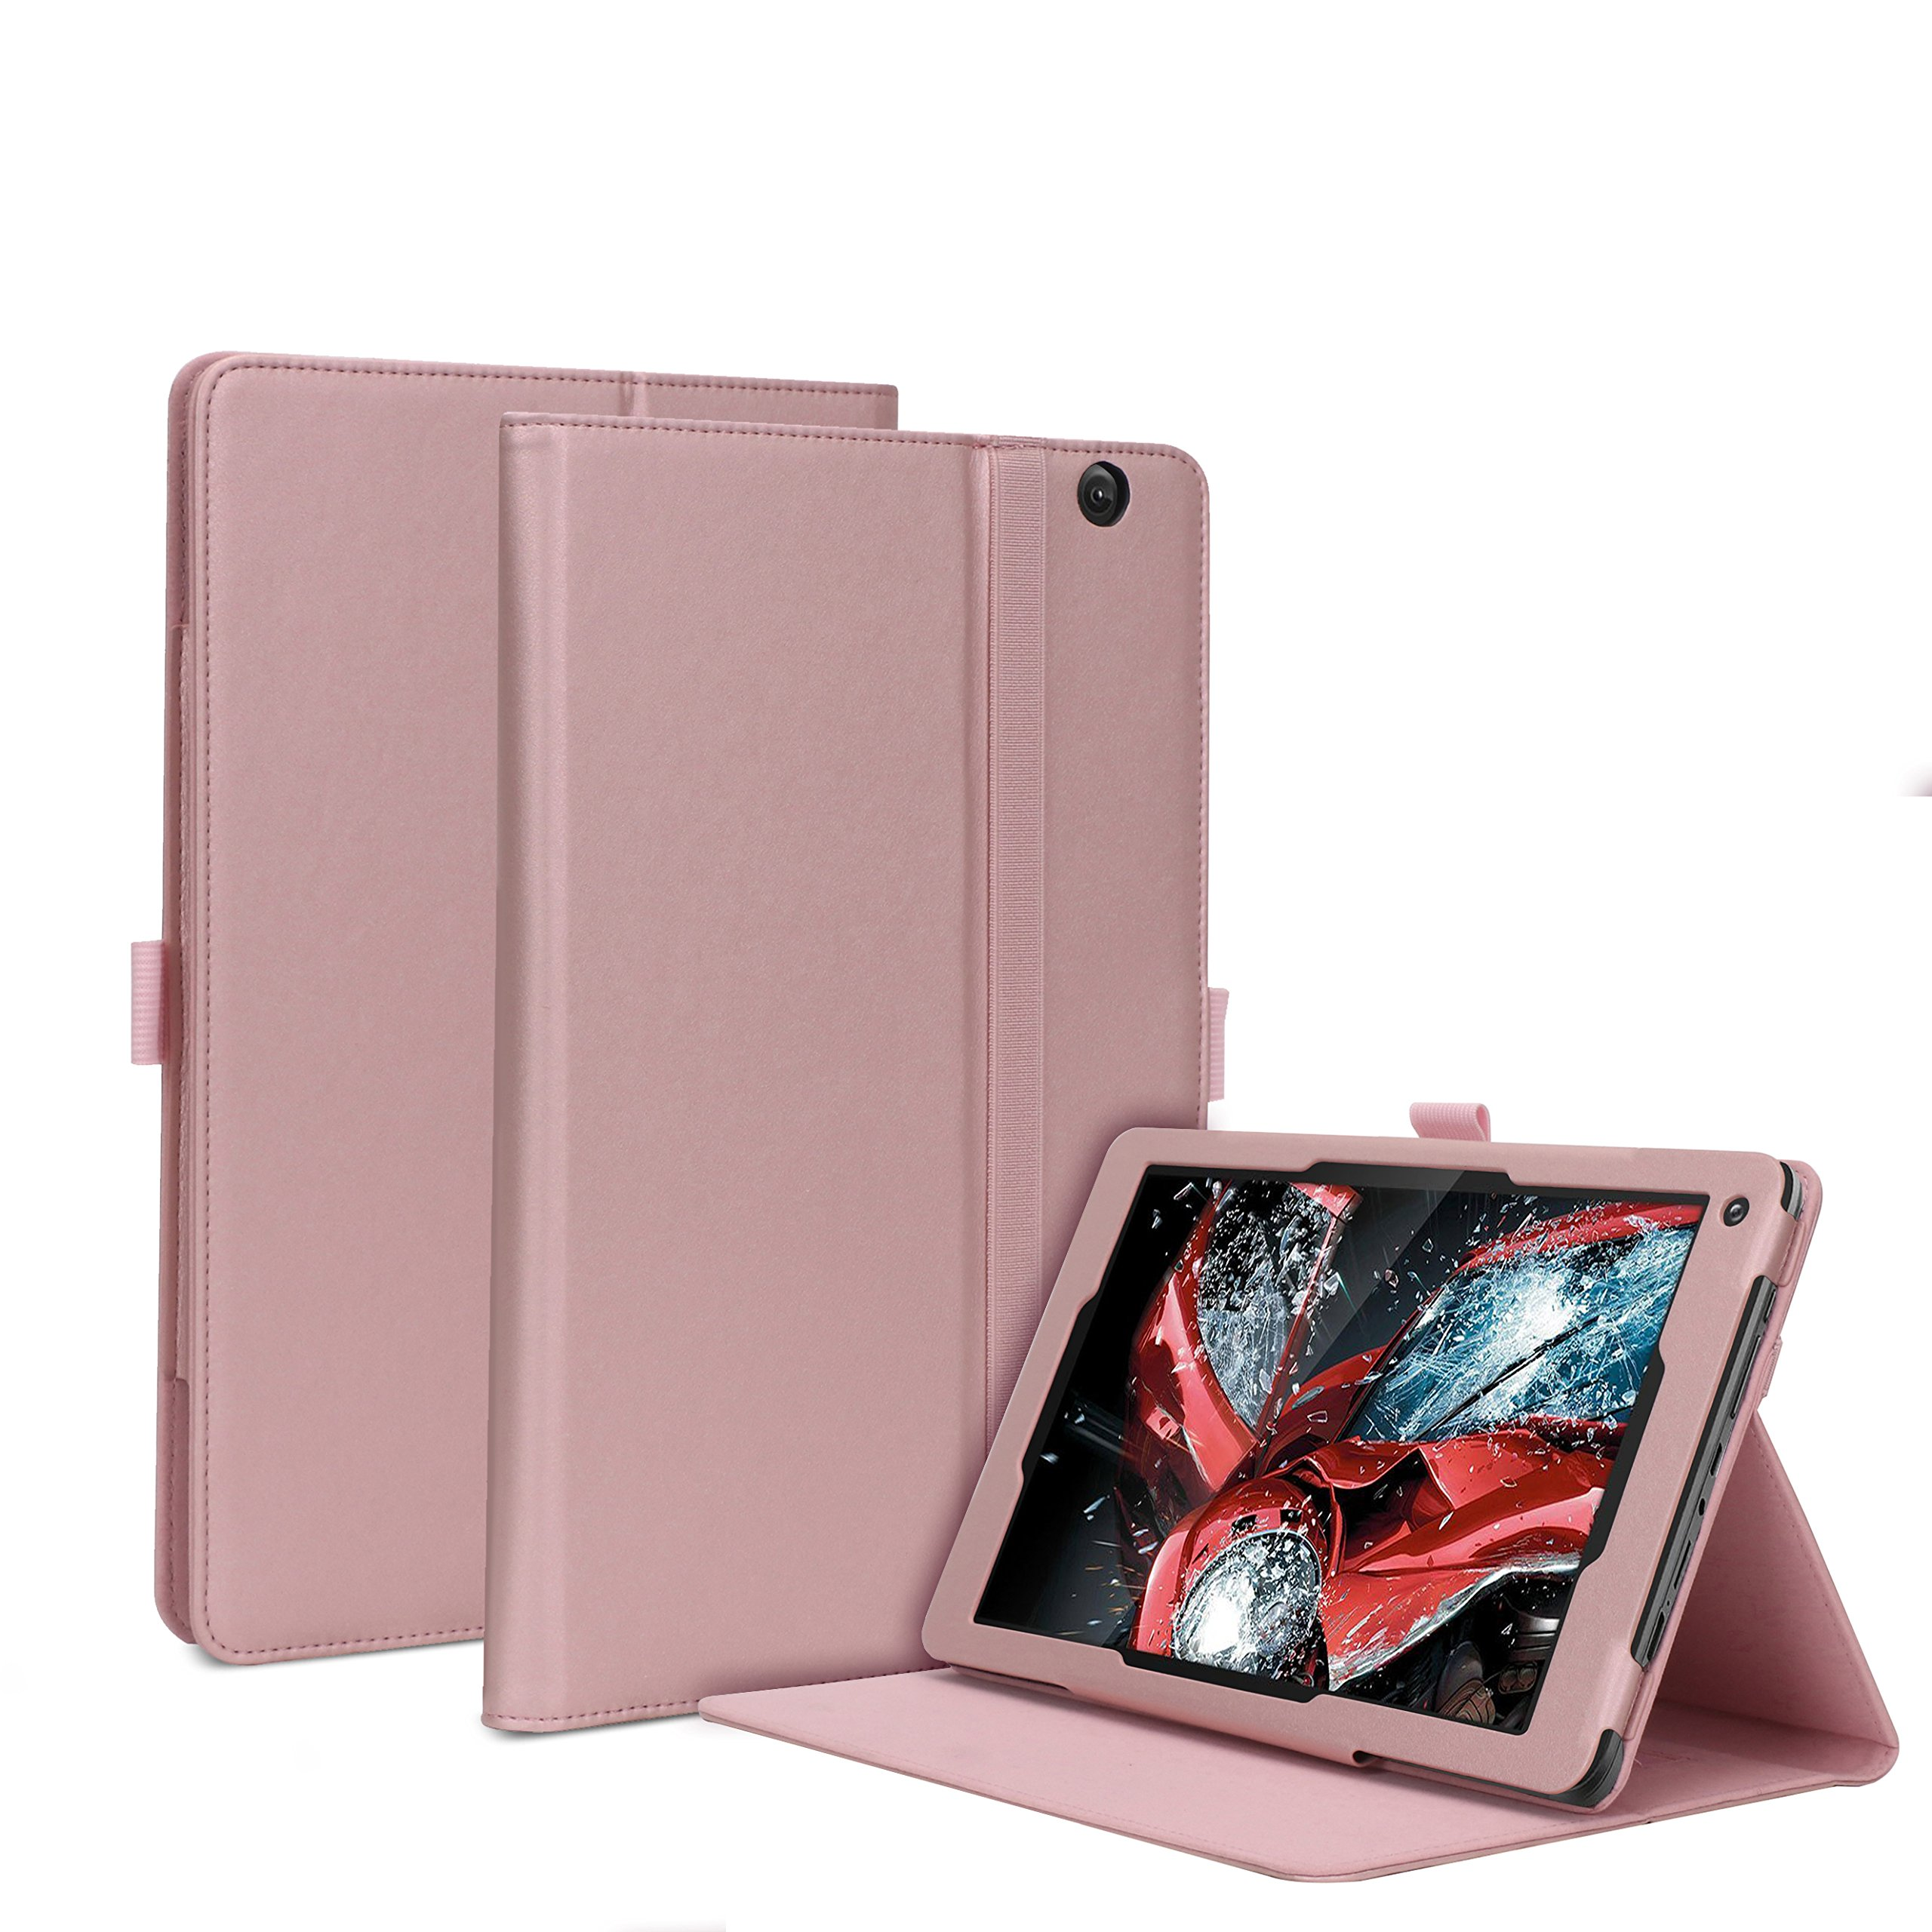 Dragon Touch V10 Case, Premium PU Leather Folio Stand Cover with Velcro Hand Strap for Dragon Touch V10 10-Inch Android Tablet (Rose gold)